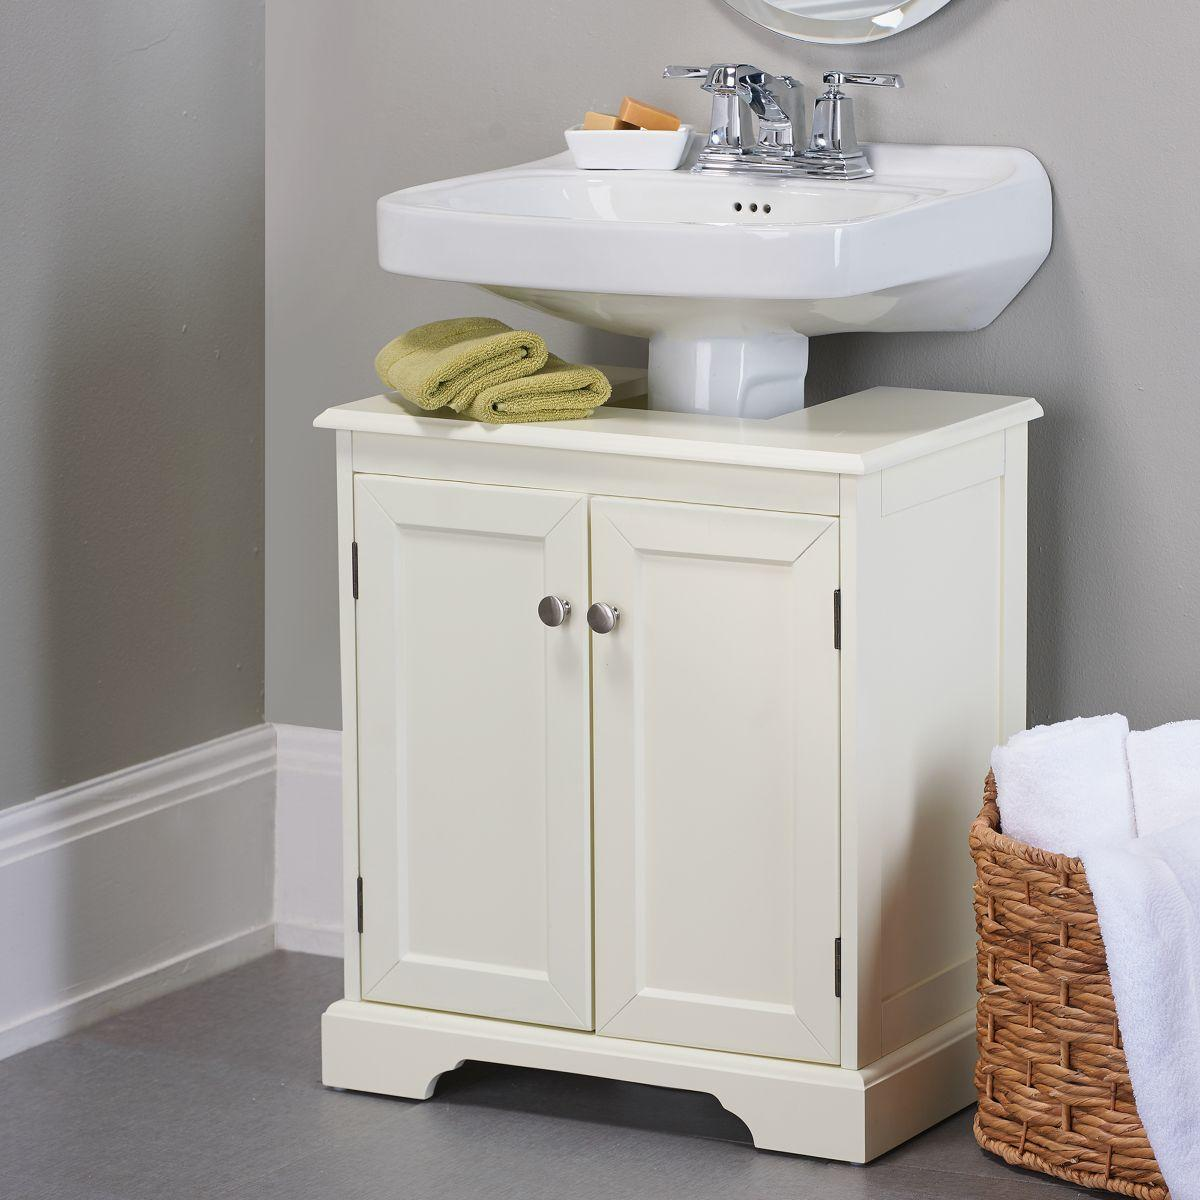 Weatherby Bathroom Pedestal Sink Storage From Improvements